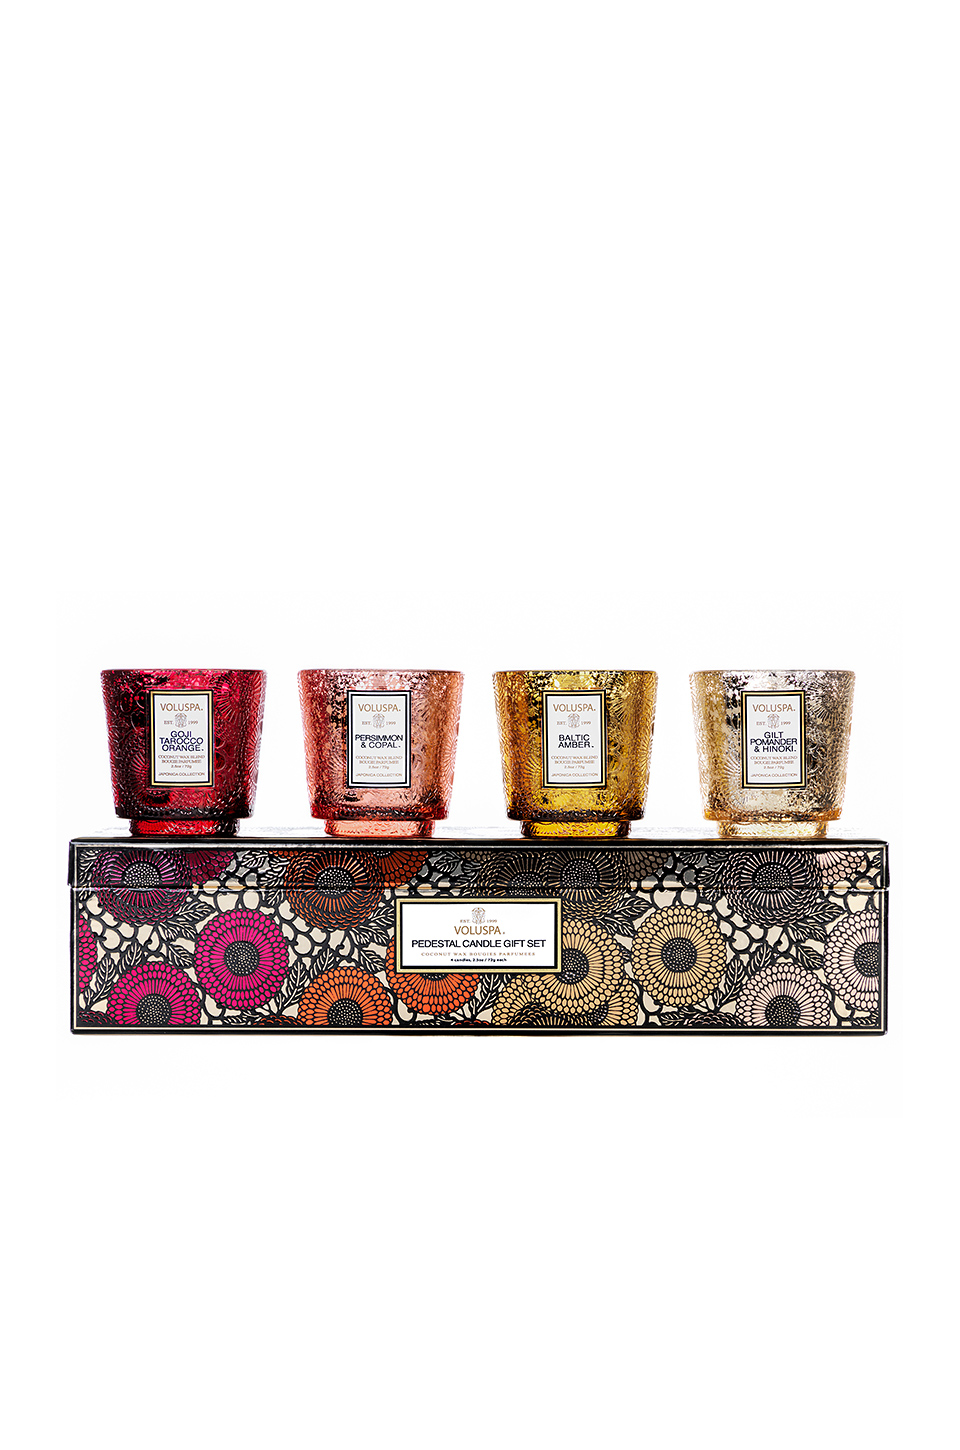 Voluspa Pedestal Warm Tones Gift Set